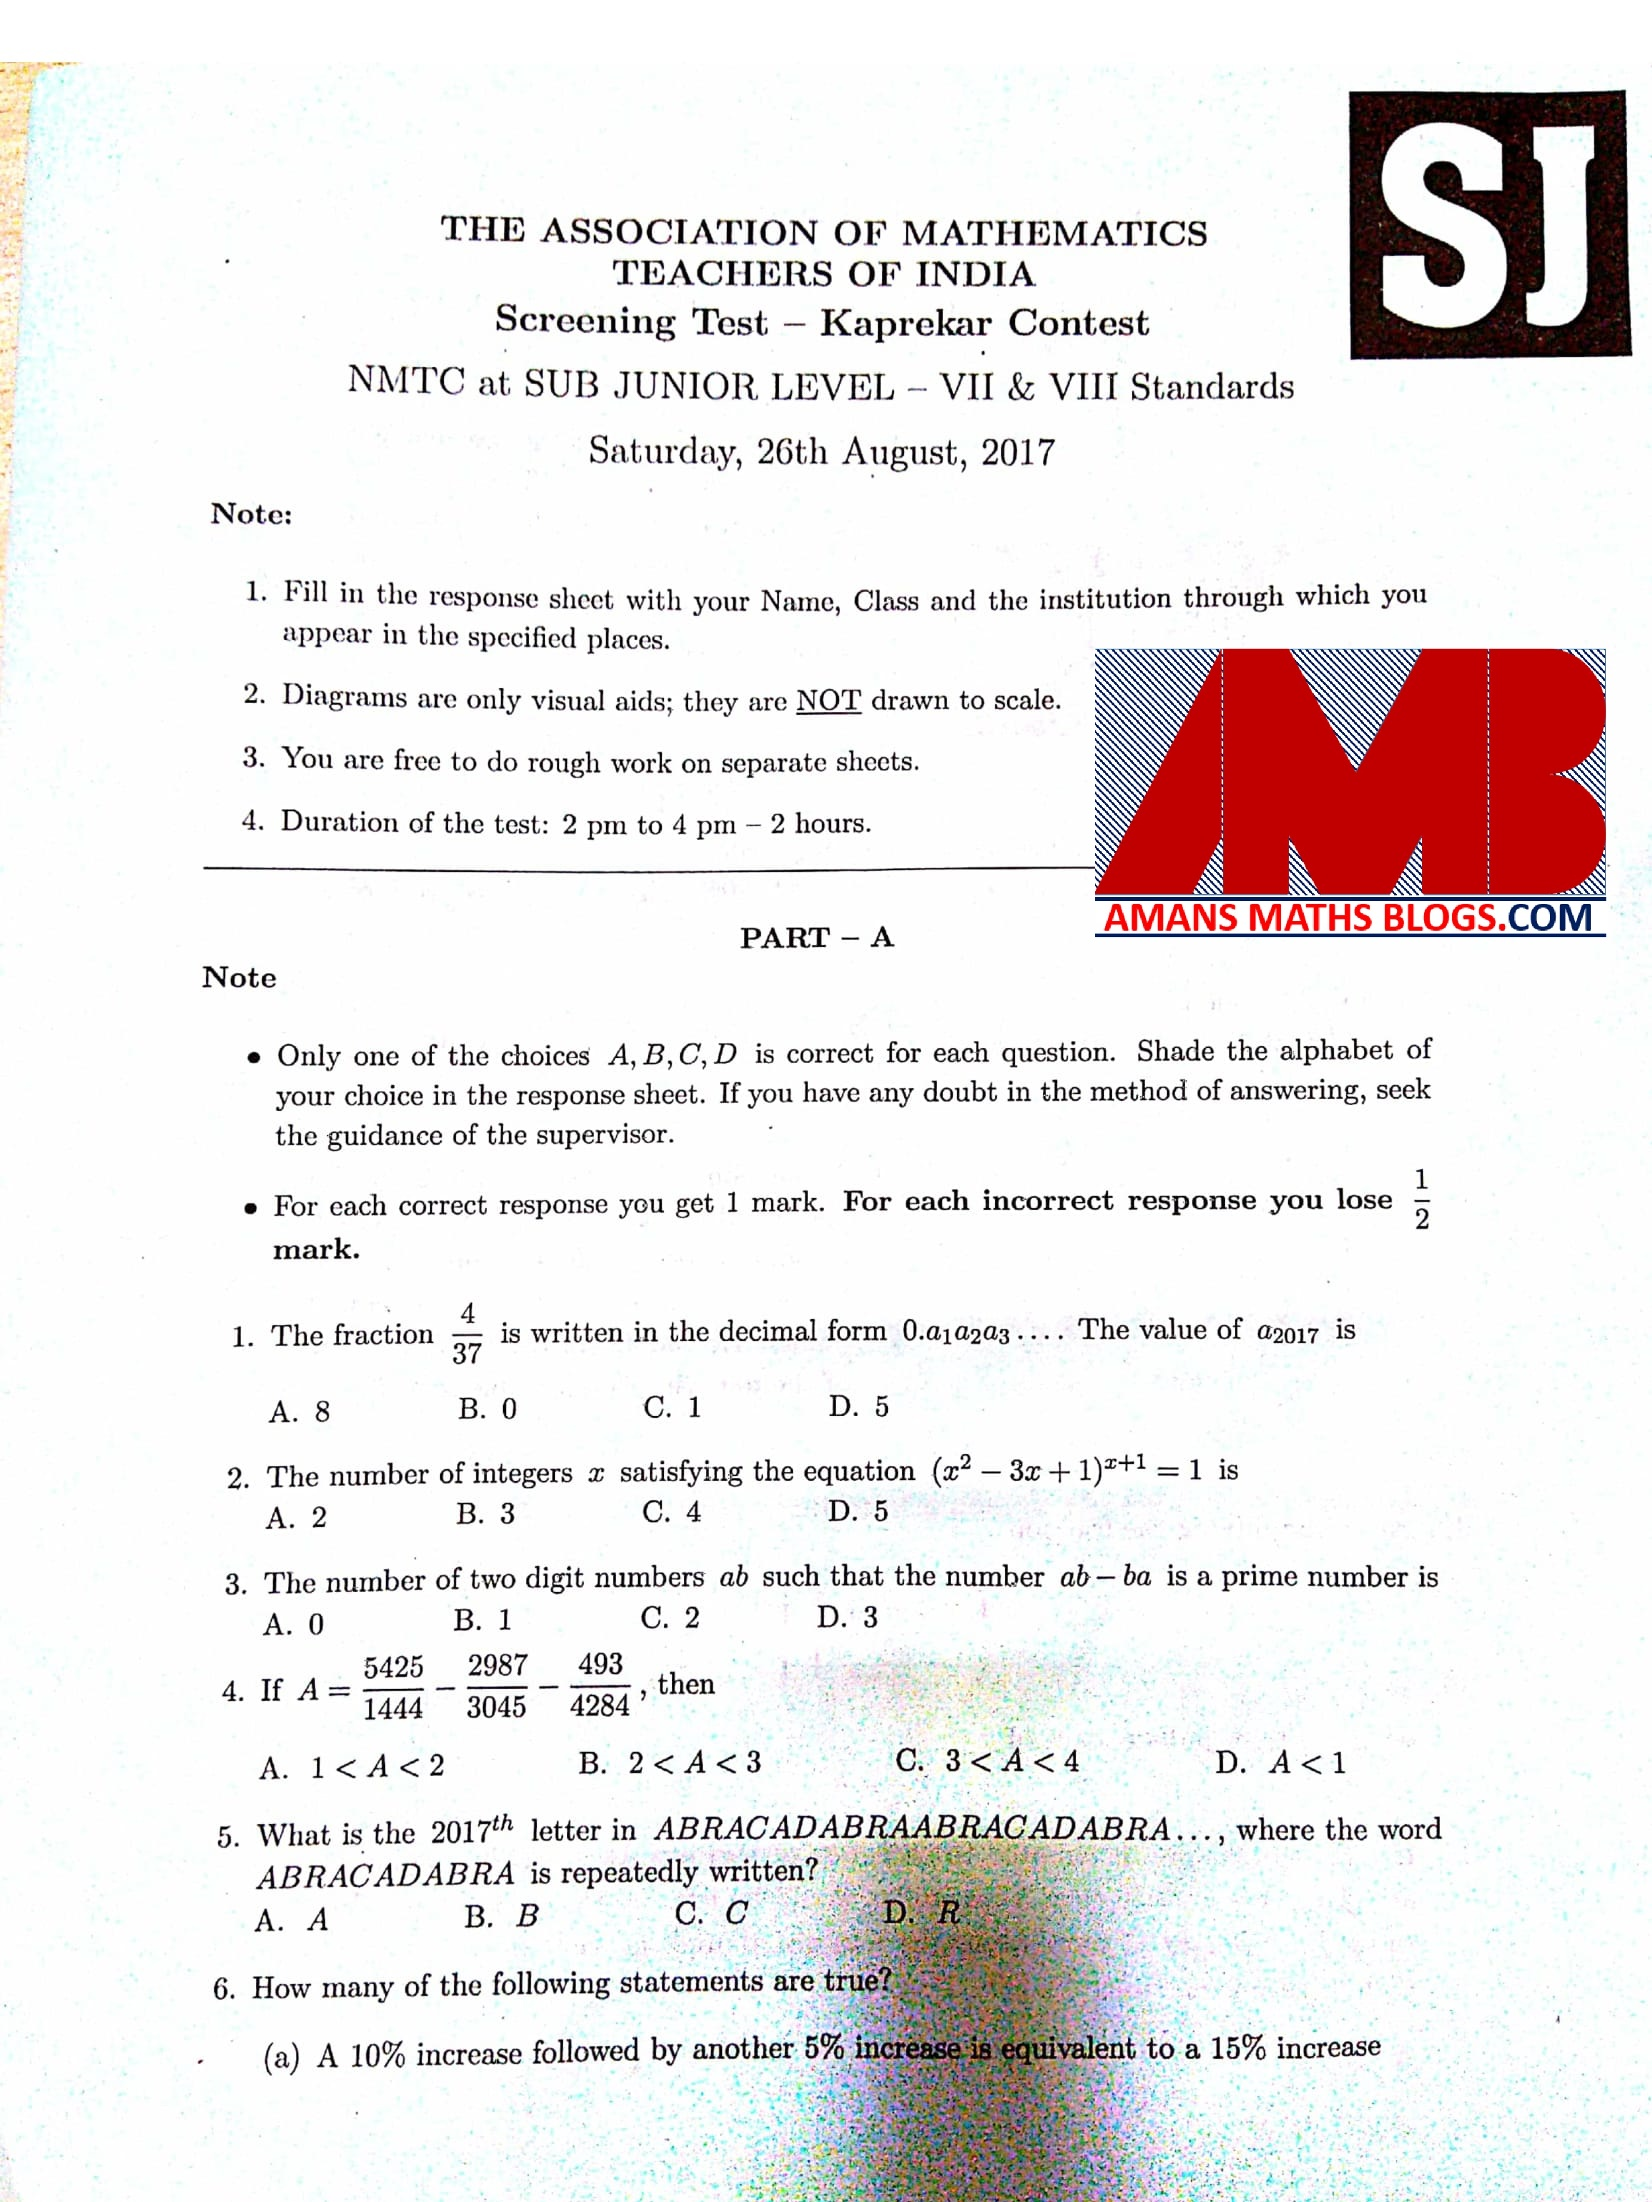 NMTC 2017 Question Papers With Solutions Sub Junior Level For Class